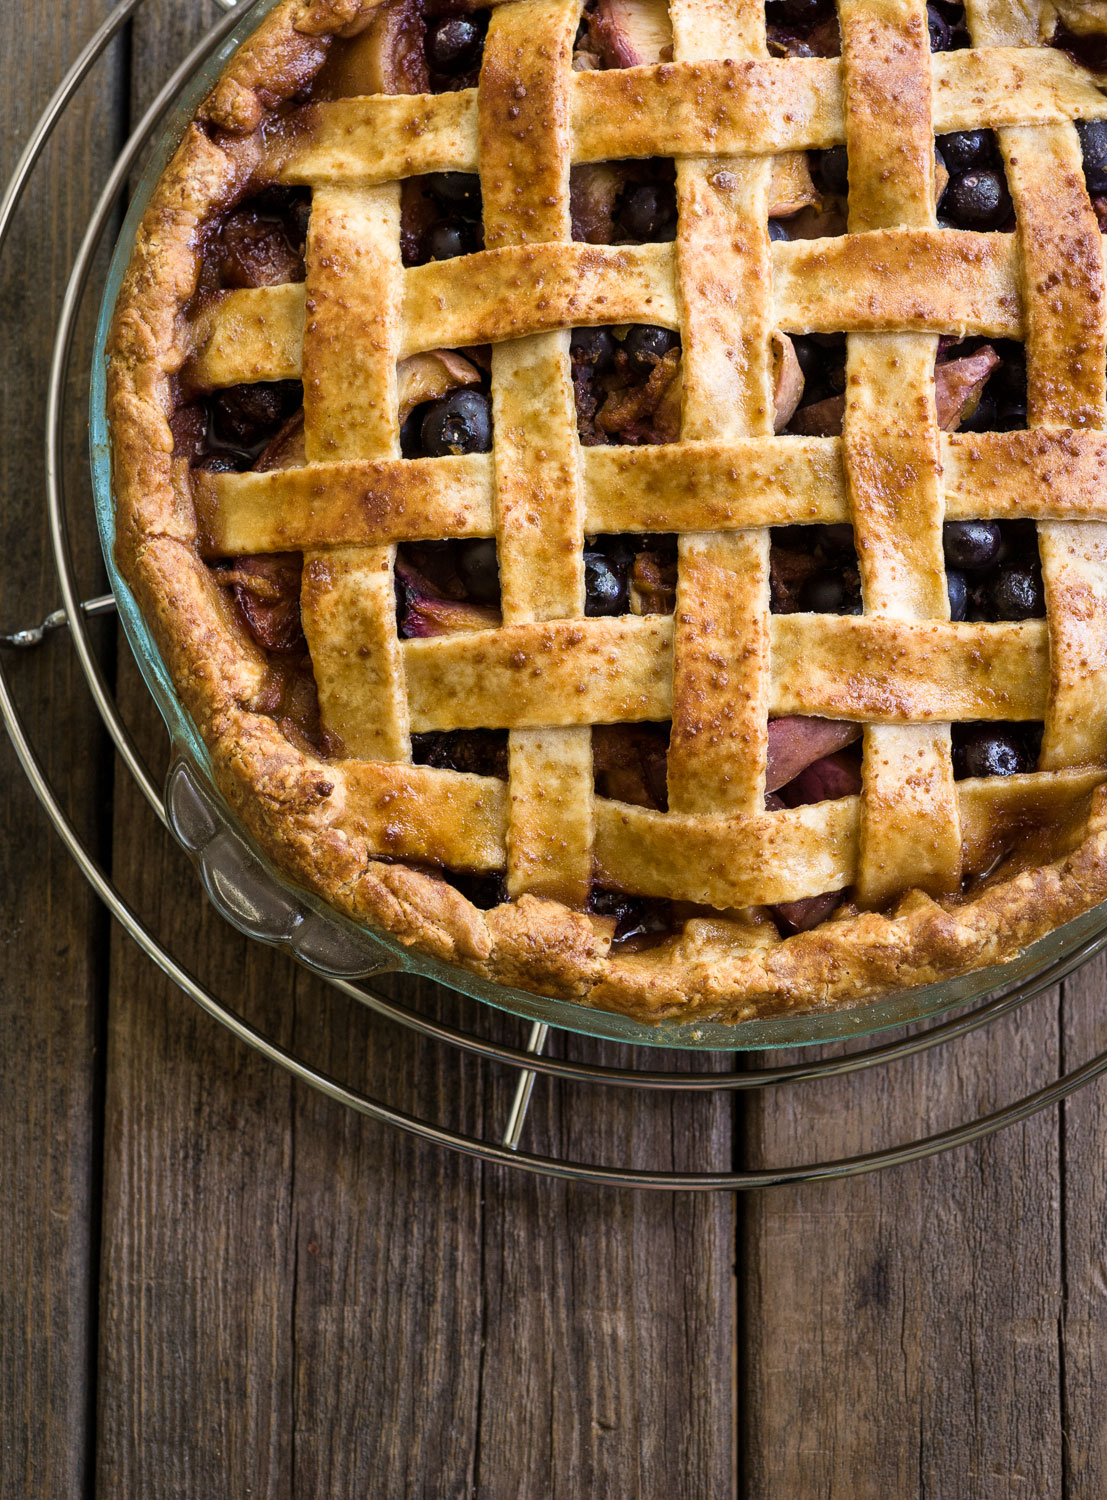 Gluten-Free Blueberry-Nectarine Pie | Minimally Invasive